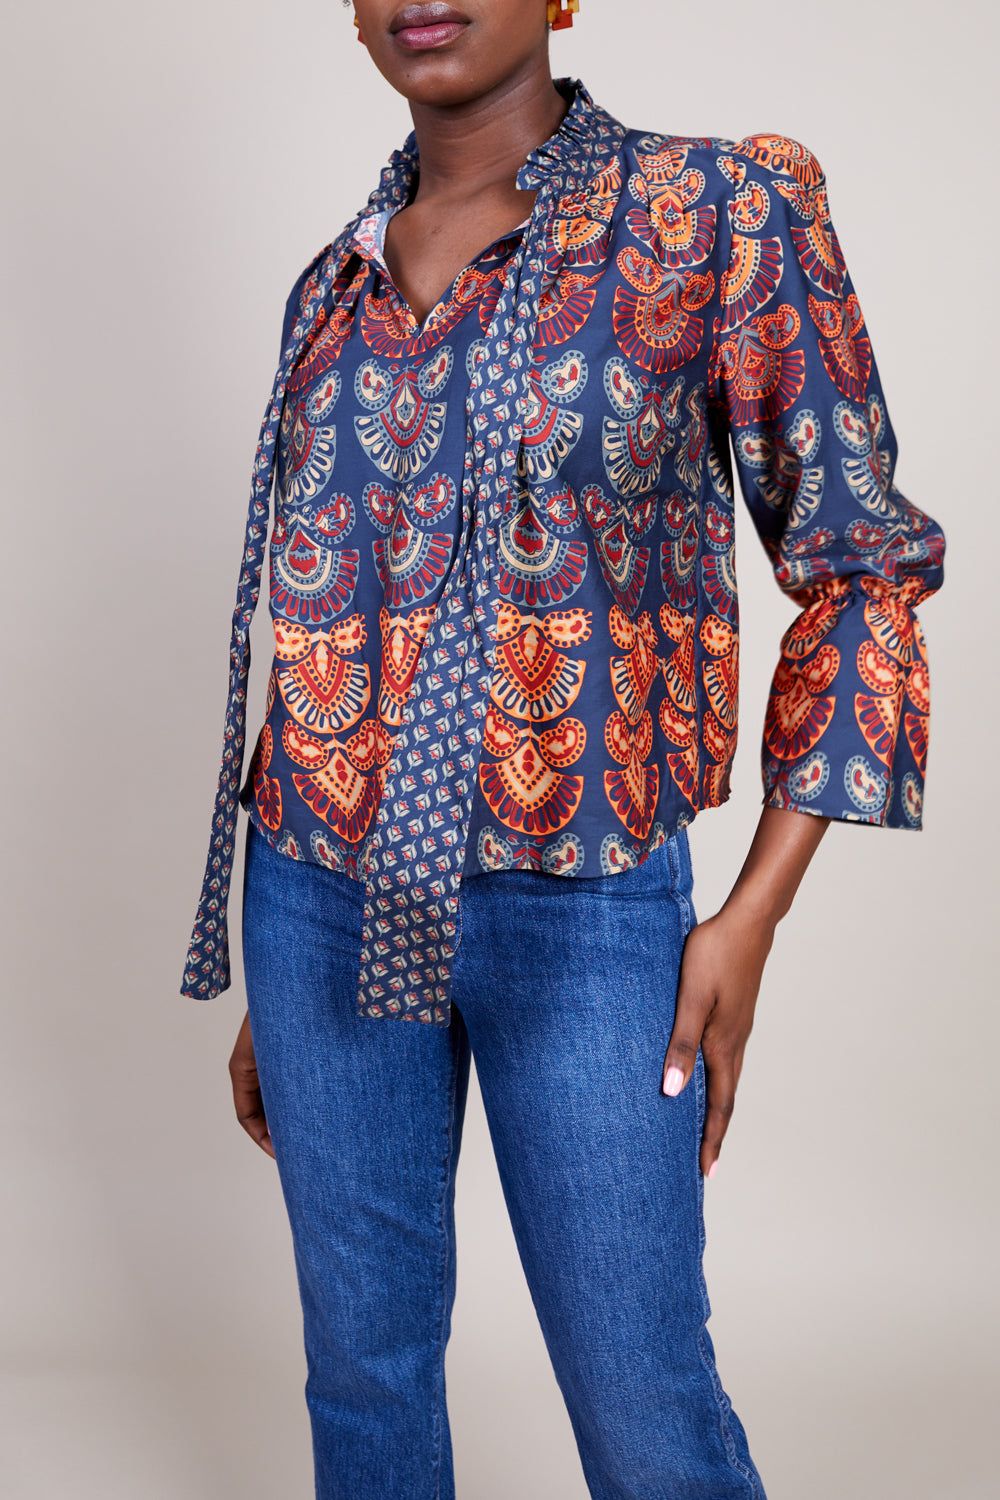 August Blouse in Black Red Multi